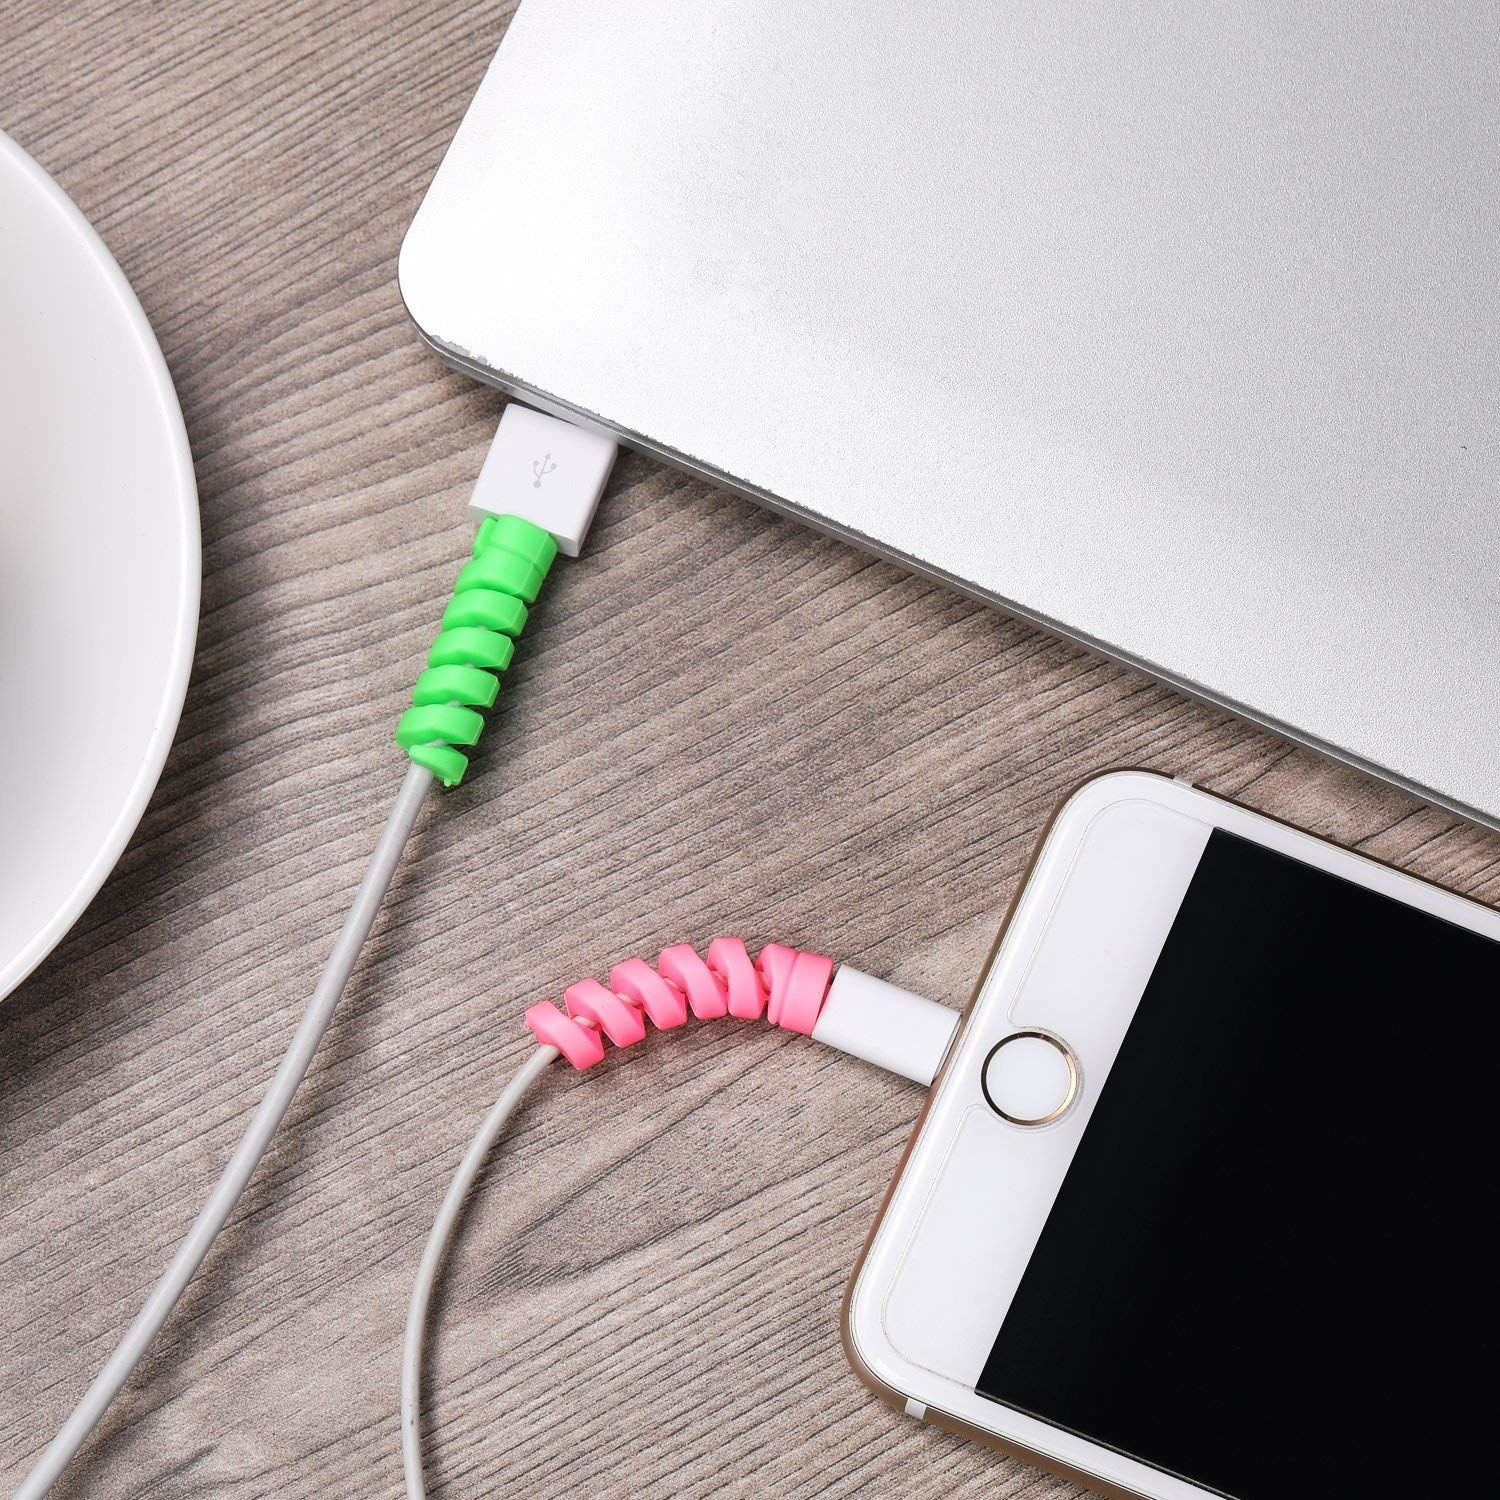 A set of charger protectors on an iPhone and an iPad wire